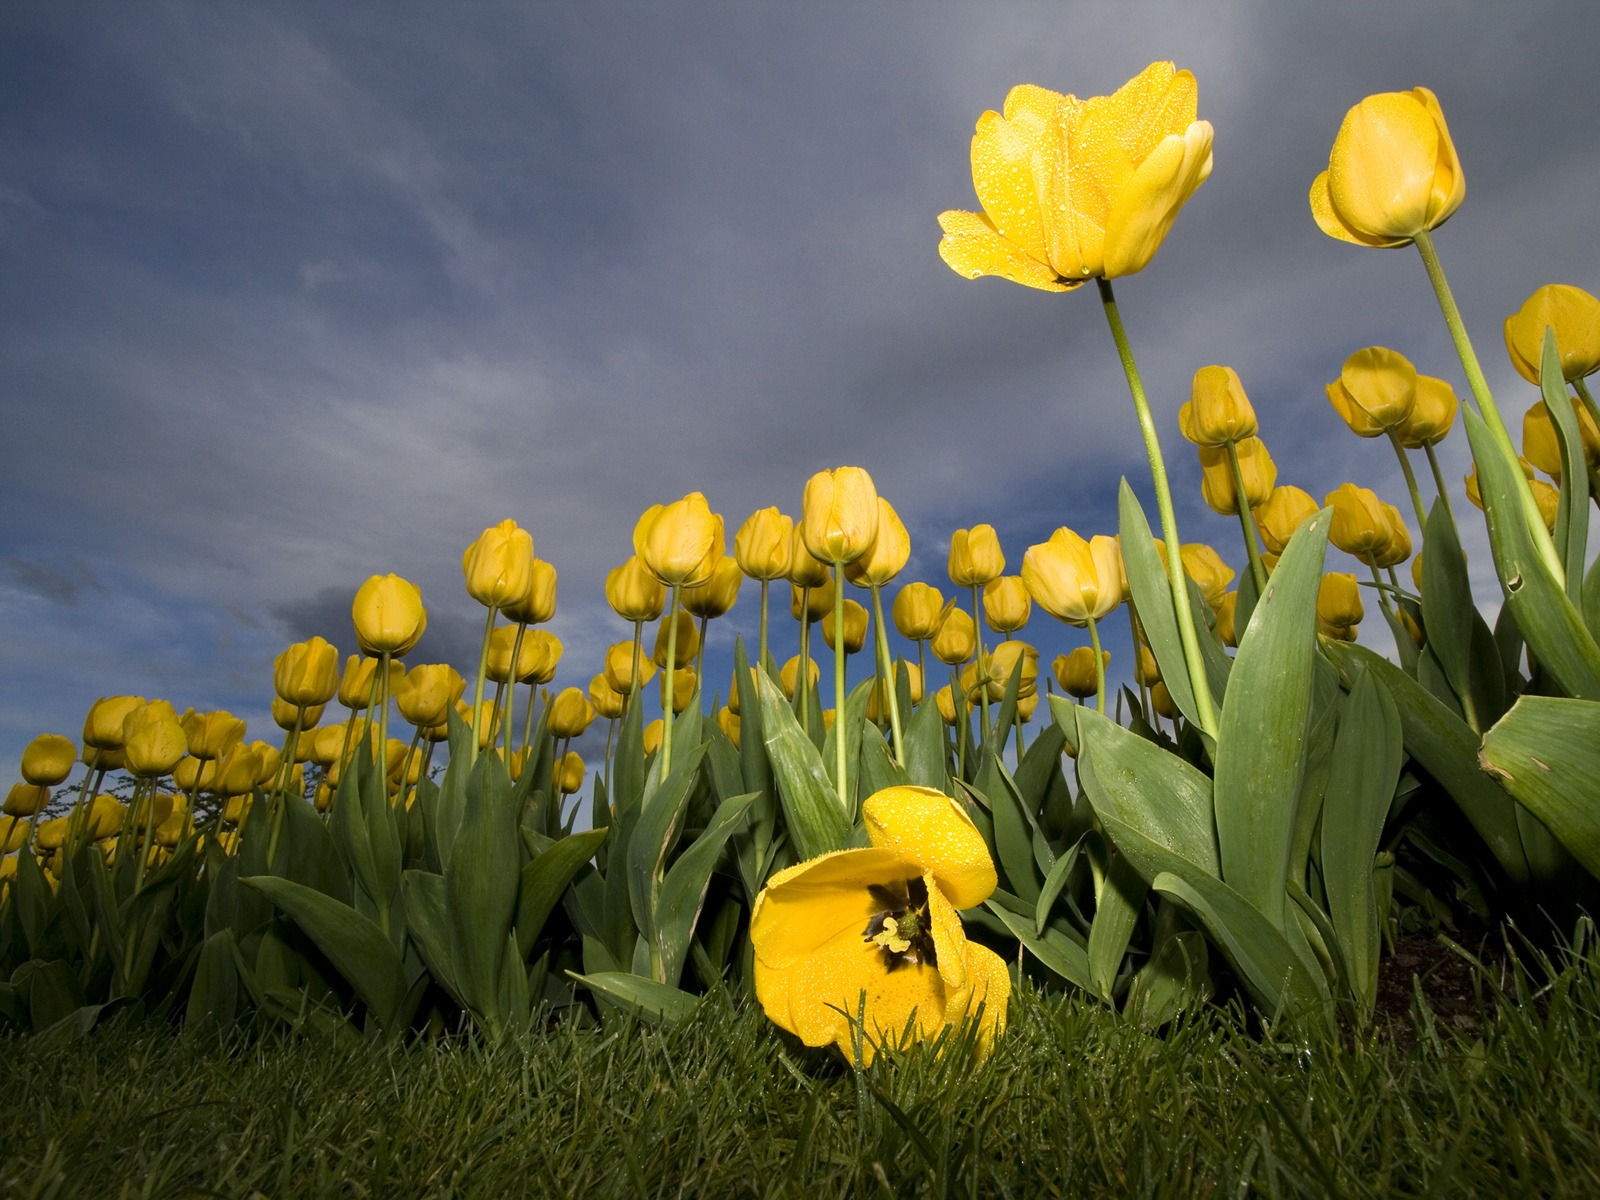 Yellow tulips wallpaper flowers nature wallpapers in jpg format for yellow tulips wallpaper flowers nature wallpapers thecheapjerseys Choice Image